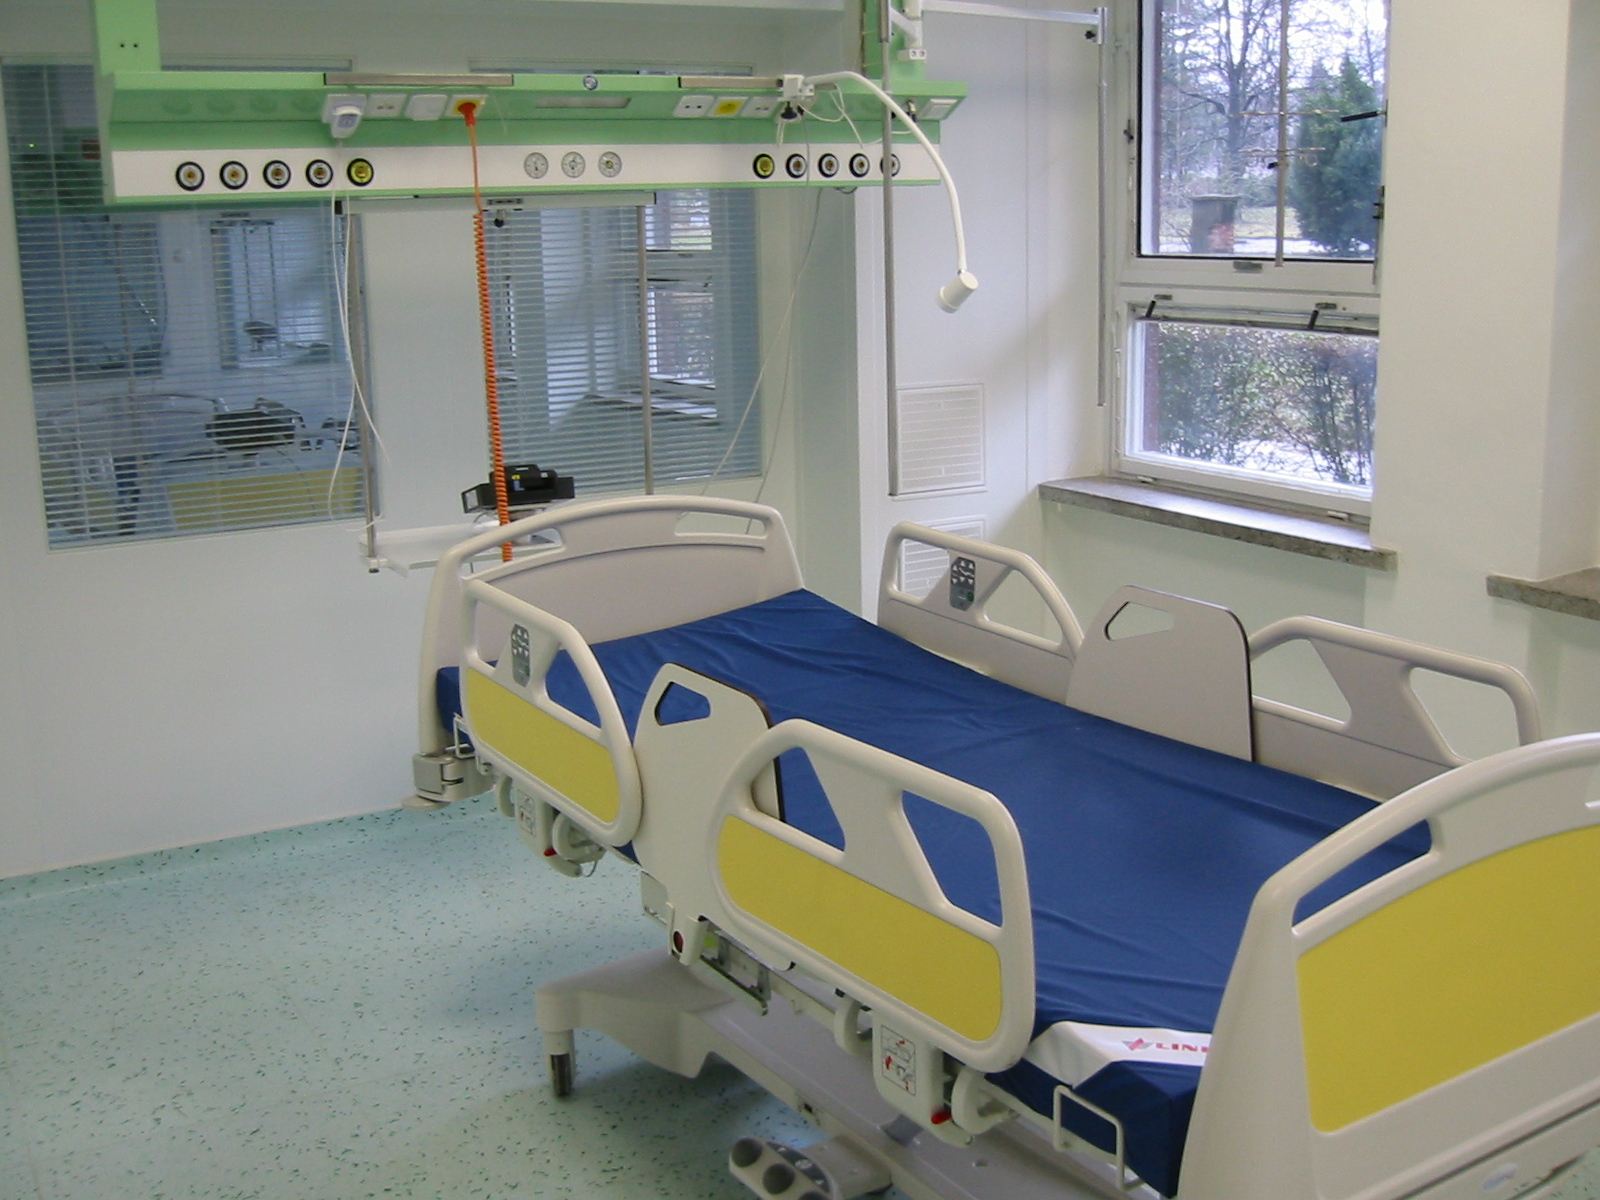 configuration and inspection of hospital systems